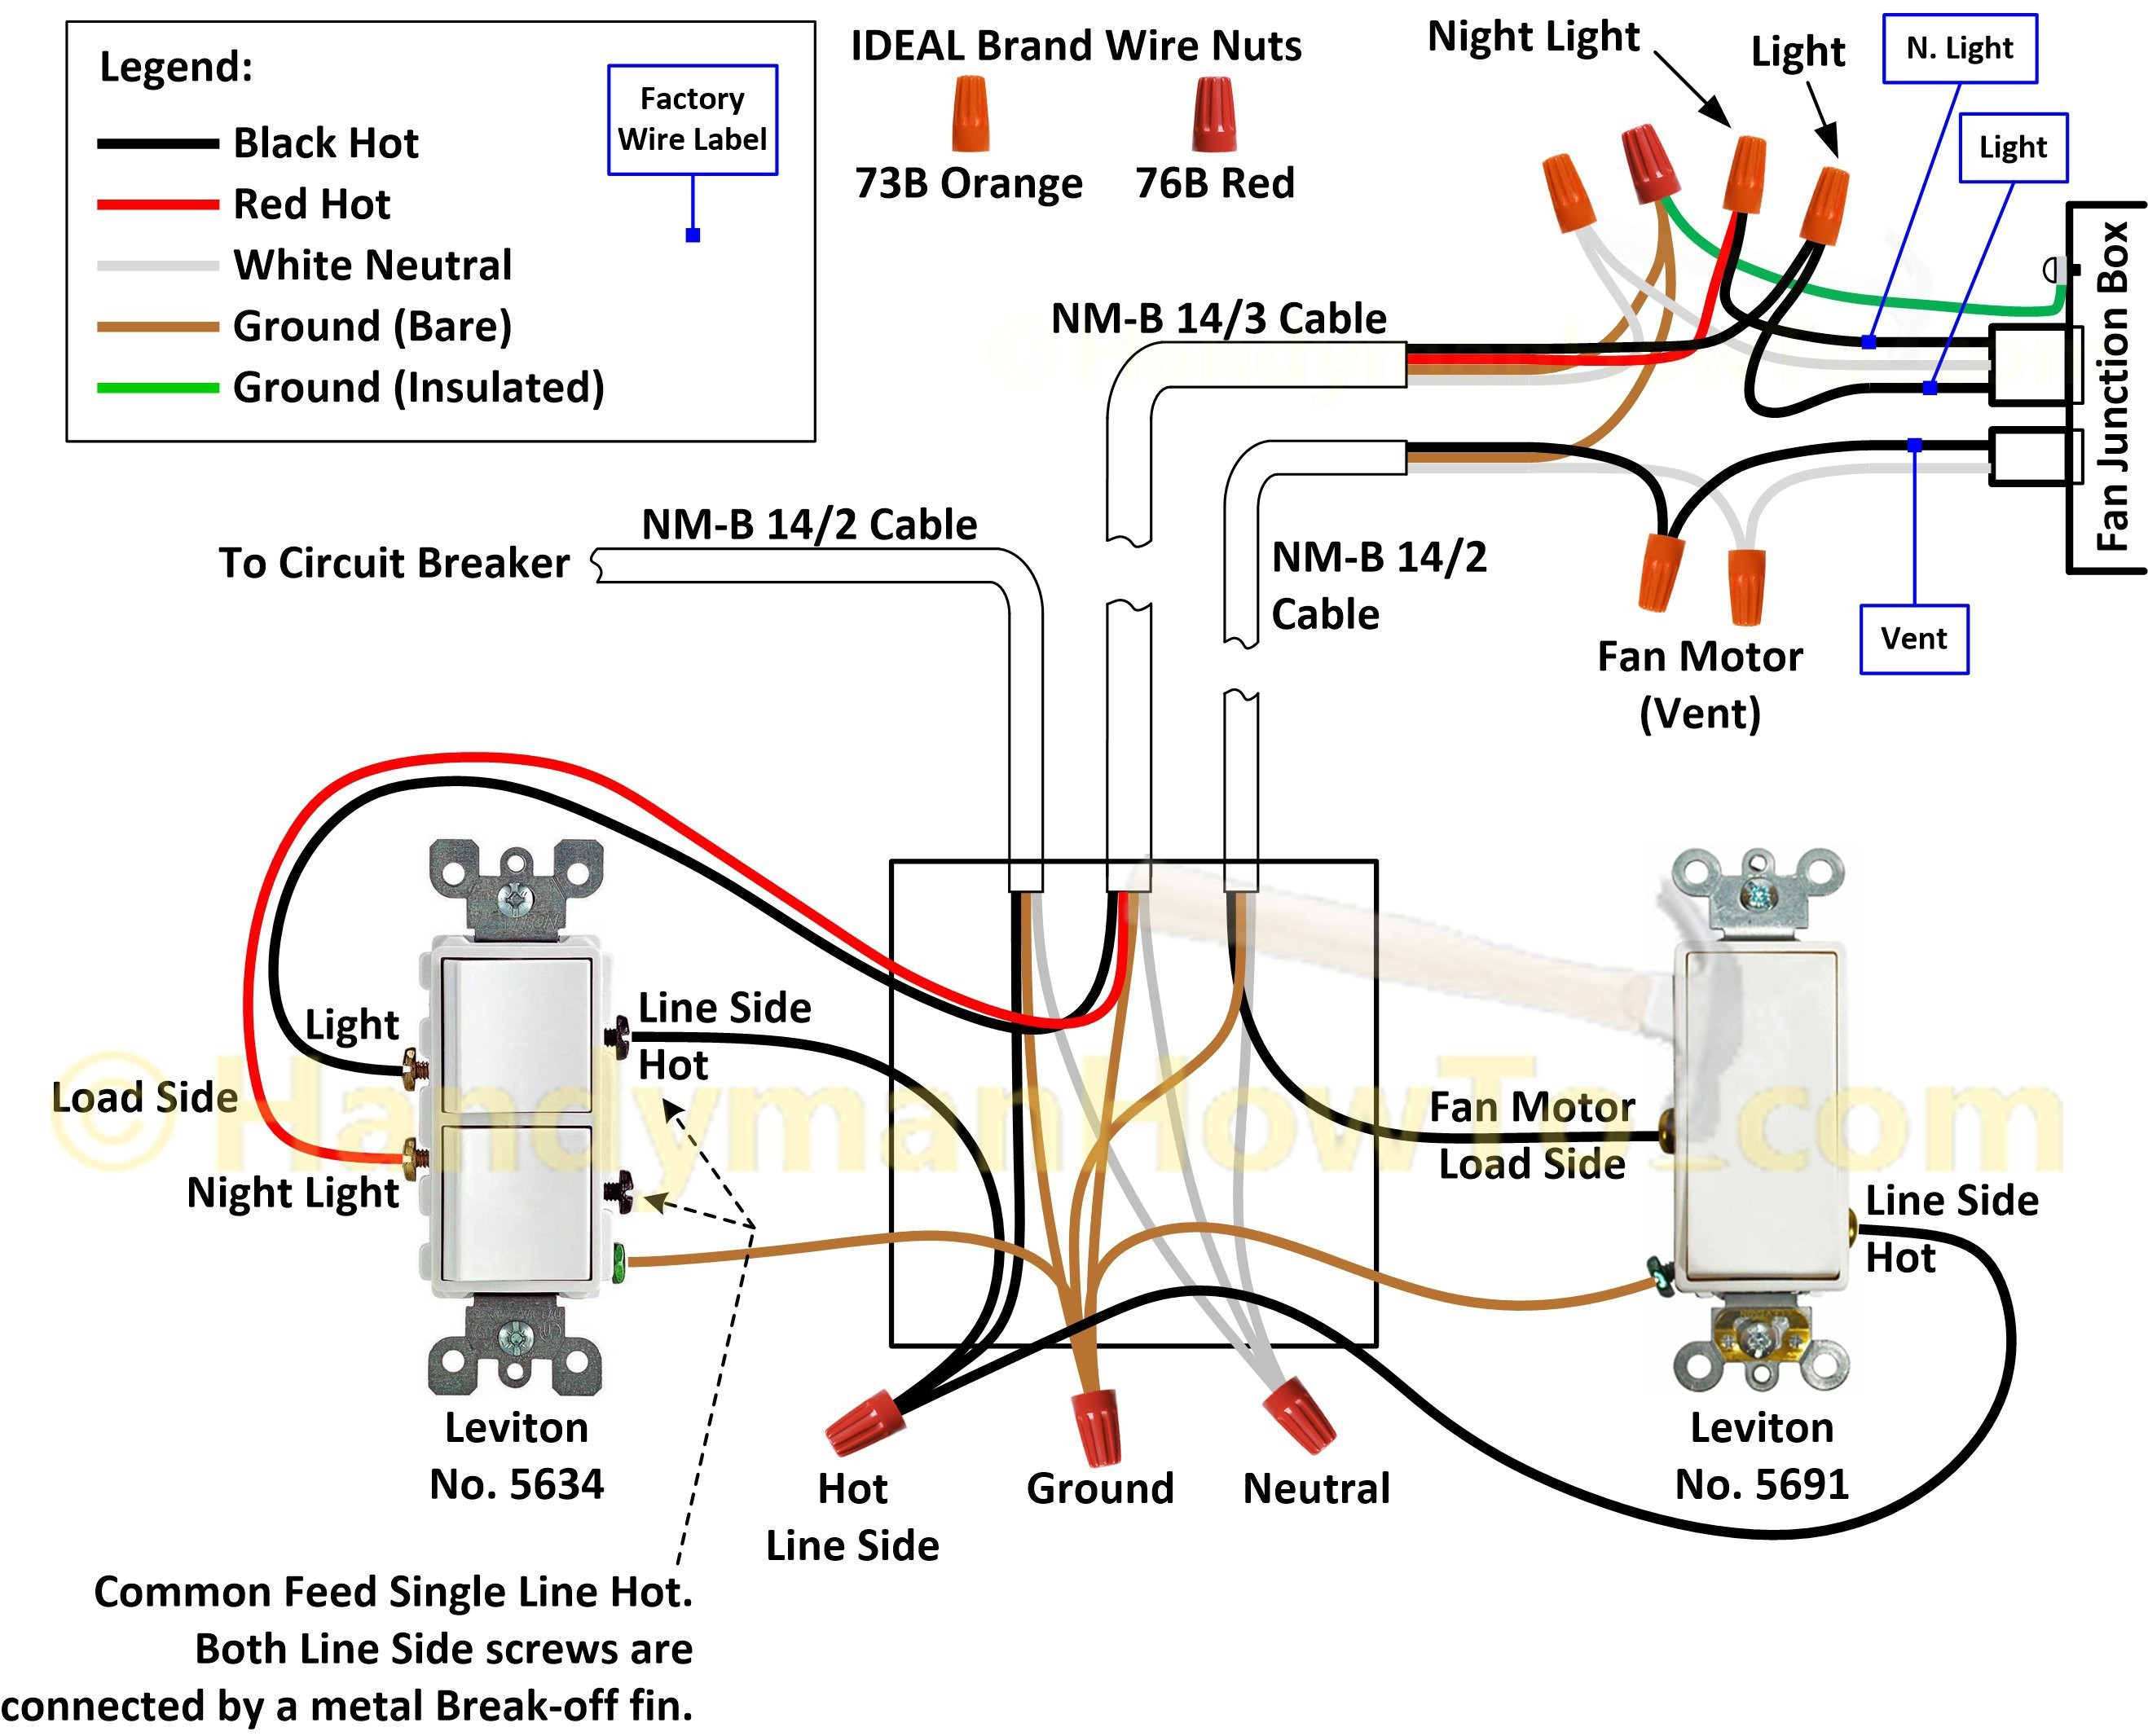 Gfci Electrical Outlet Wiring Diagram from static-cdn.imageservice.cloud